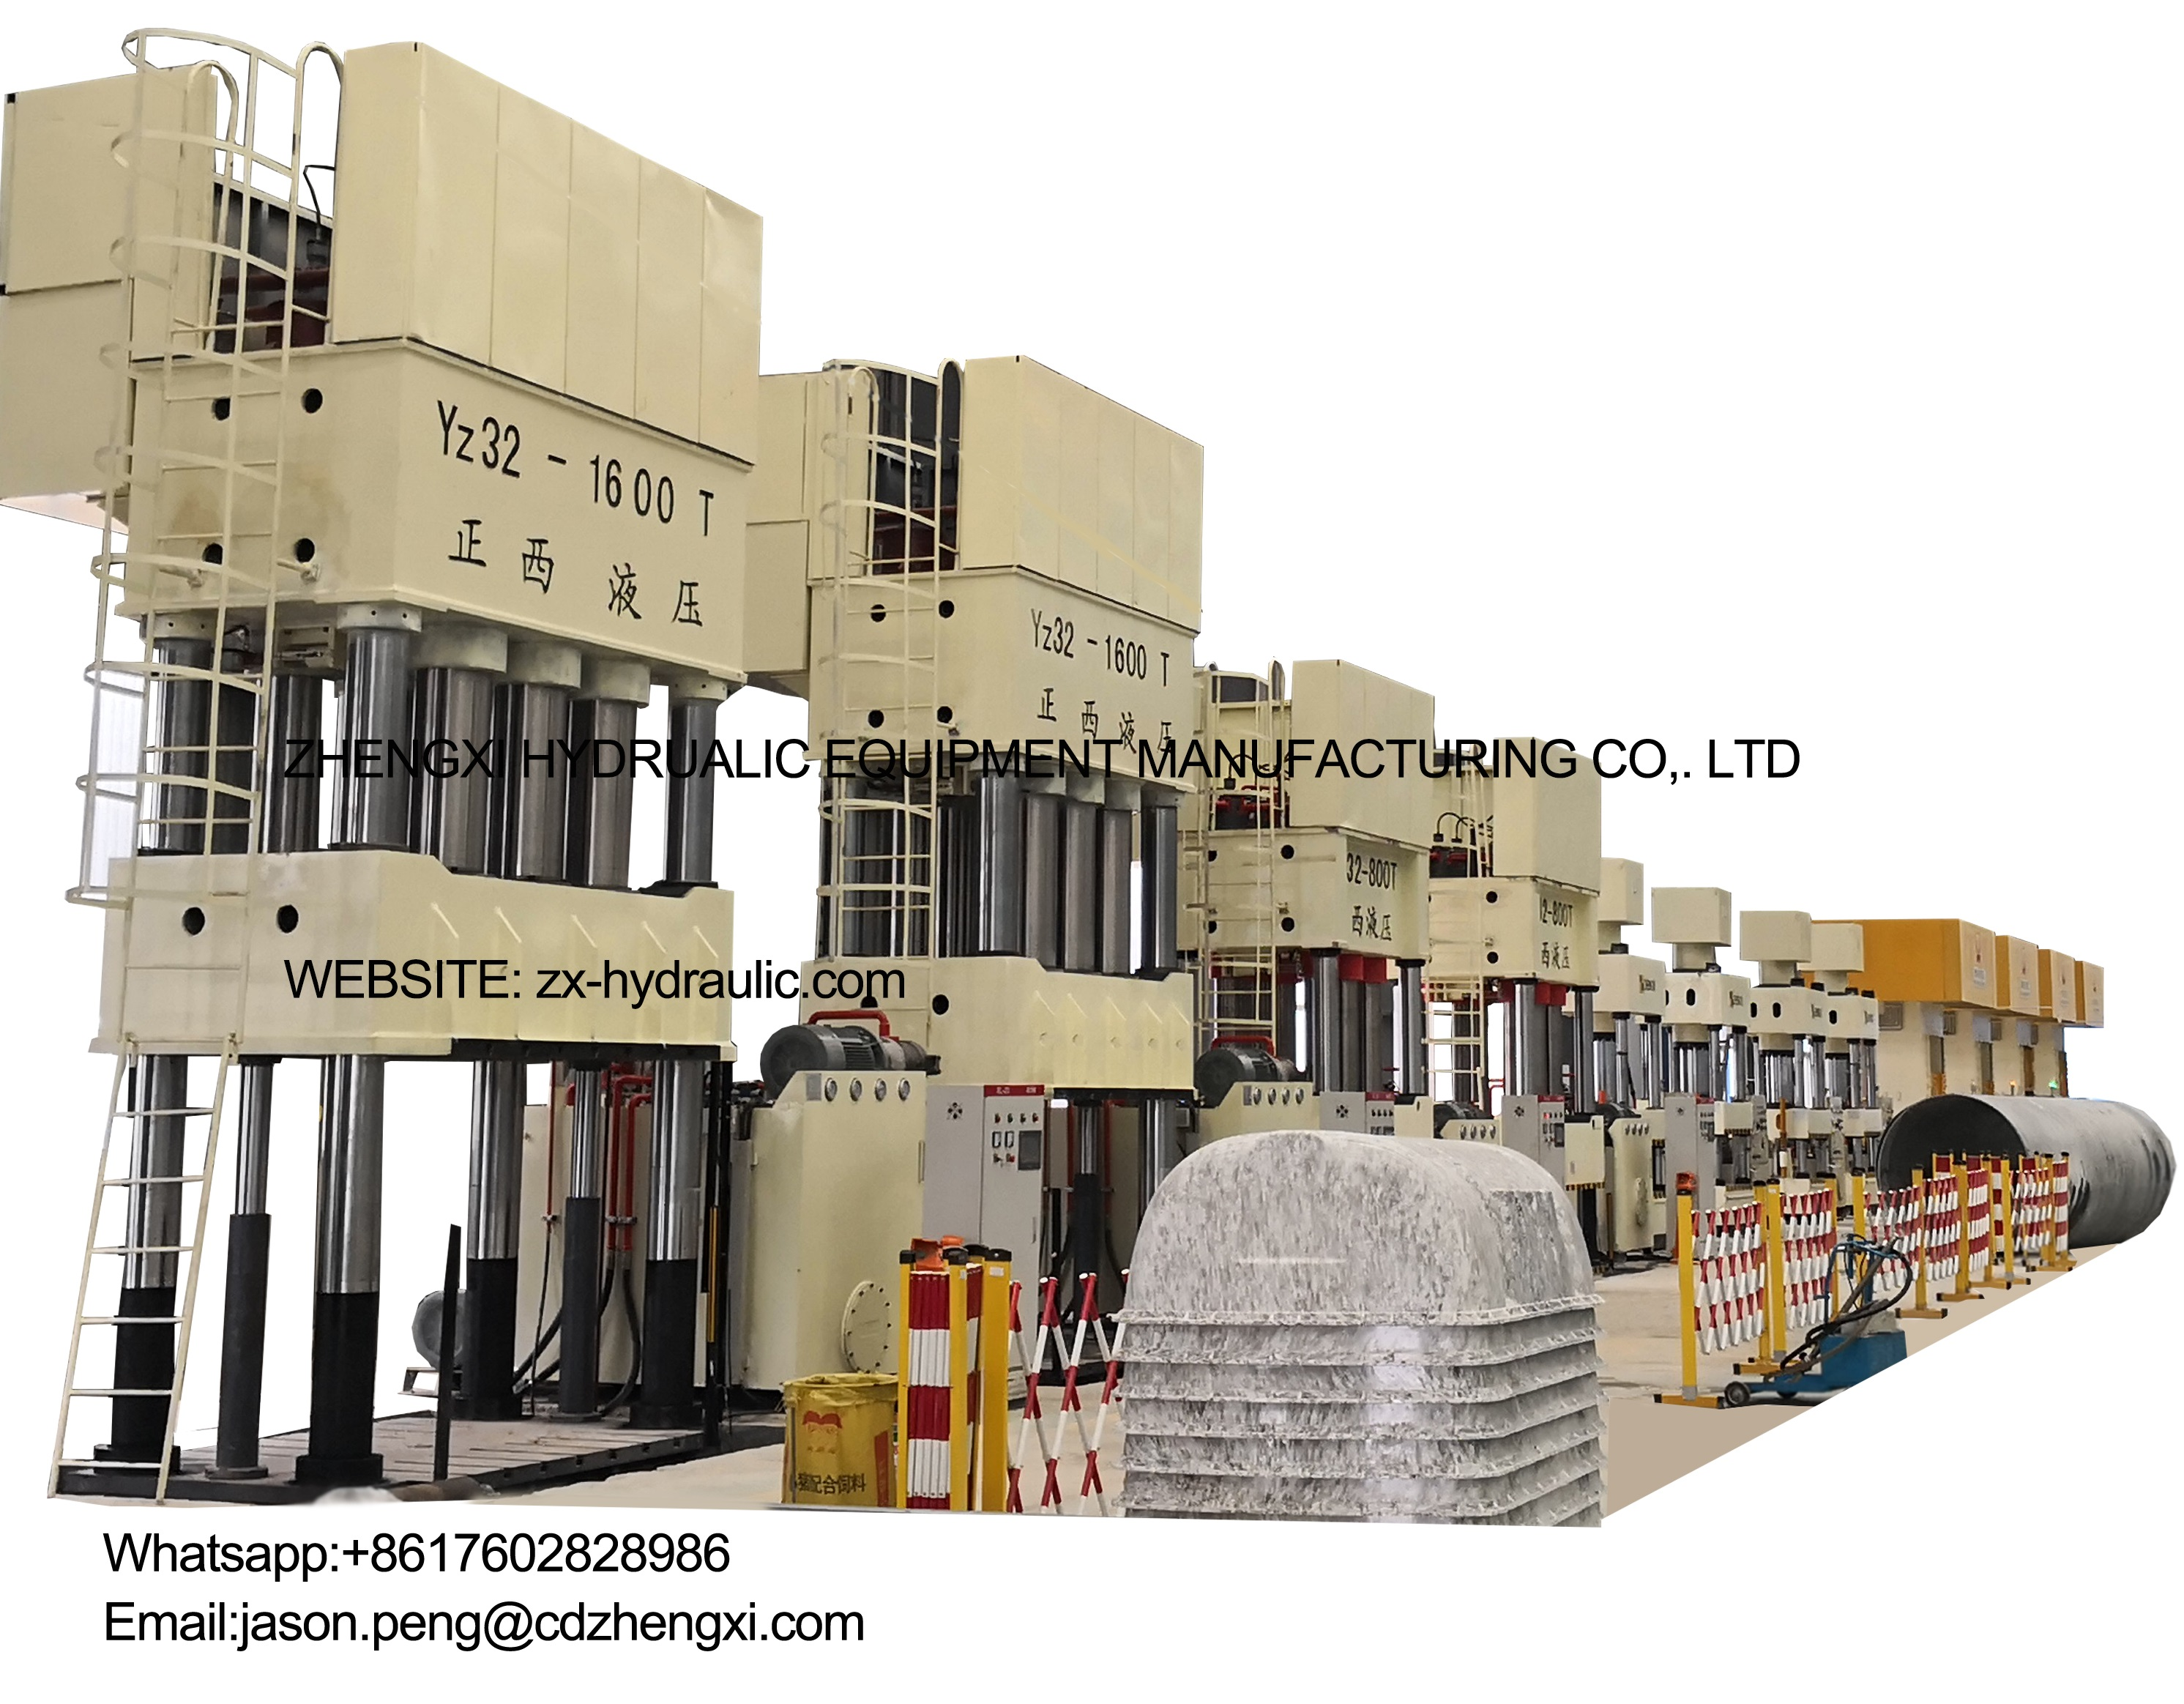 Hydraulic_Press_Machine_Production_Line